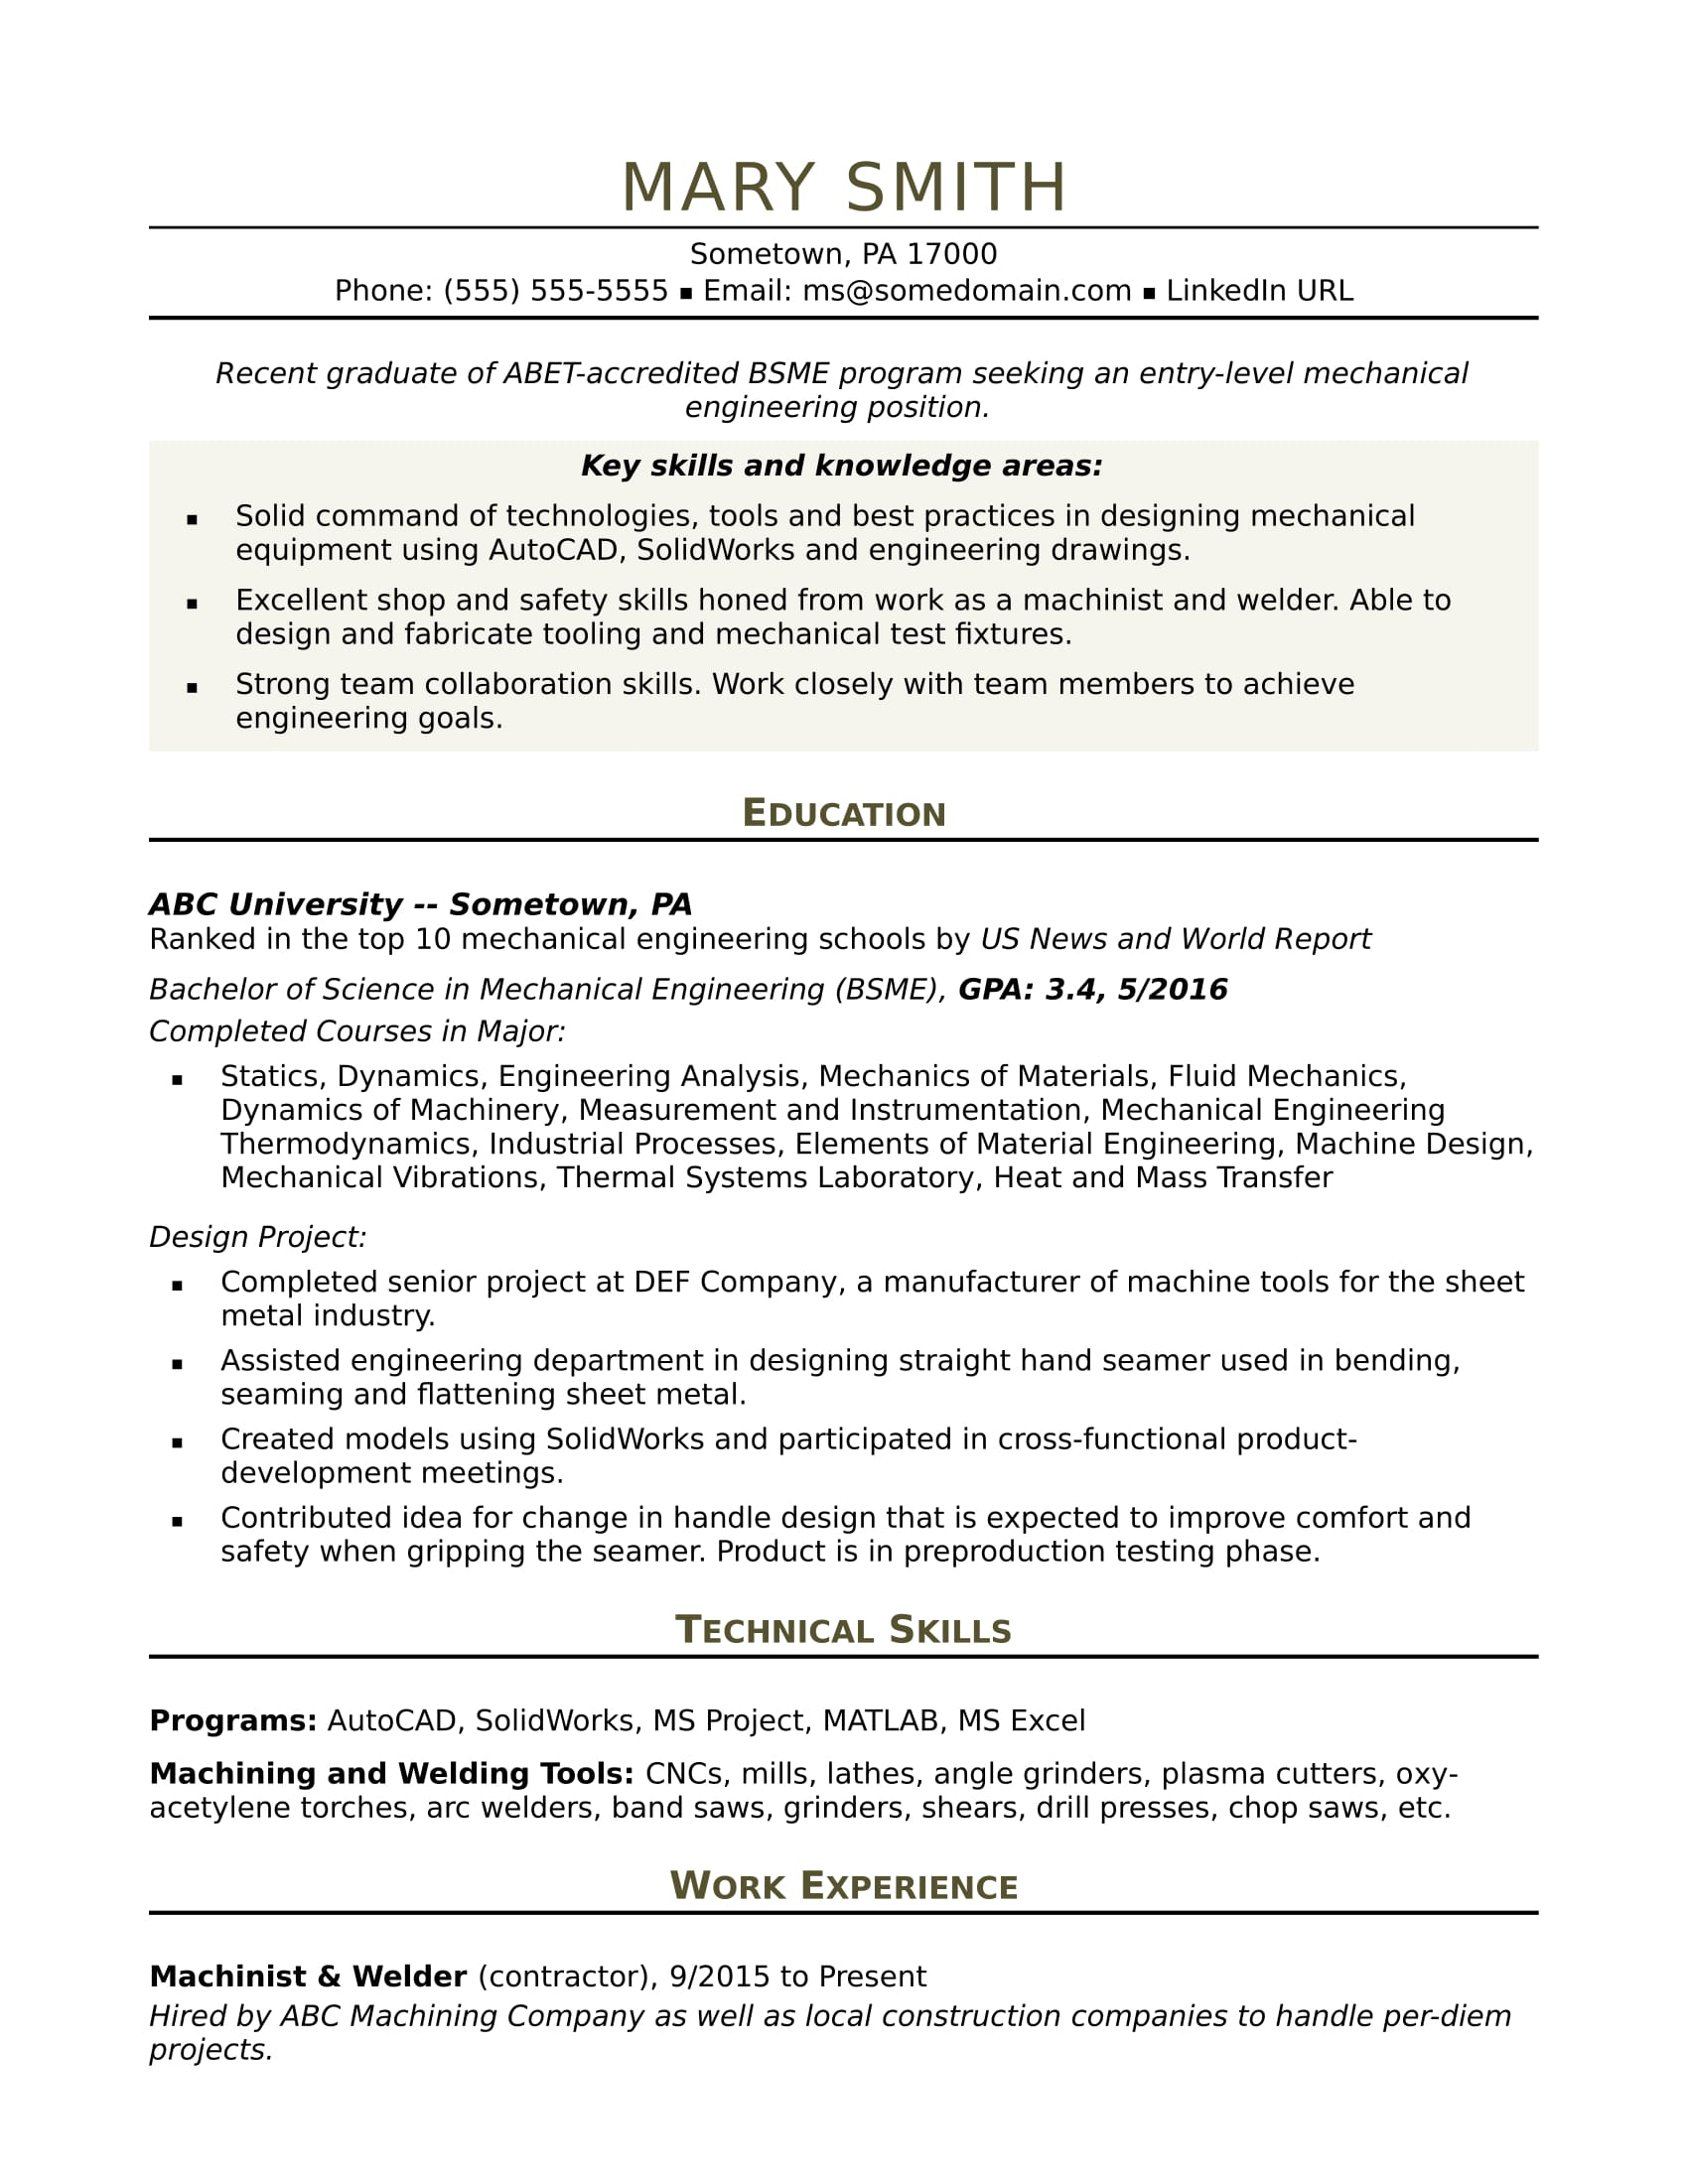 sample resume for an entry level mechanical engineer monster industrial staff accountant Resume Industrial Engineer Resume